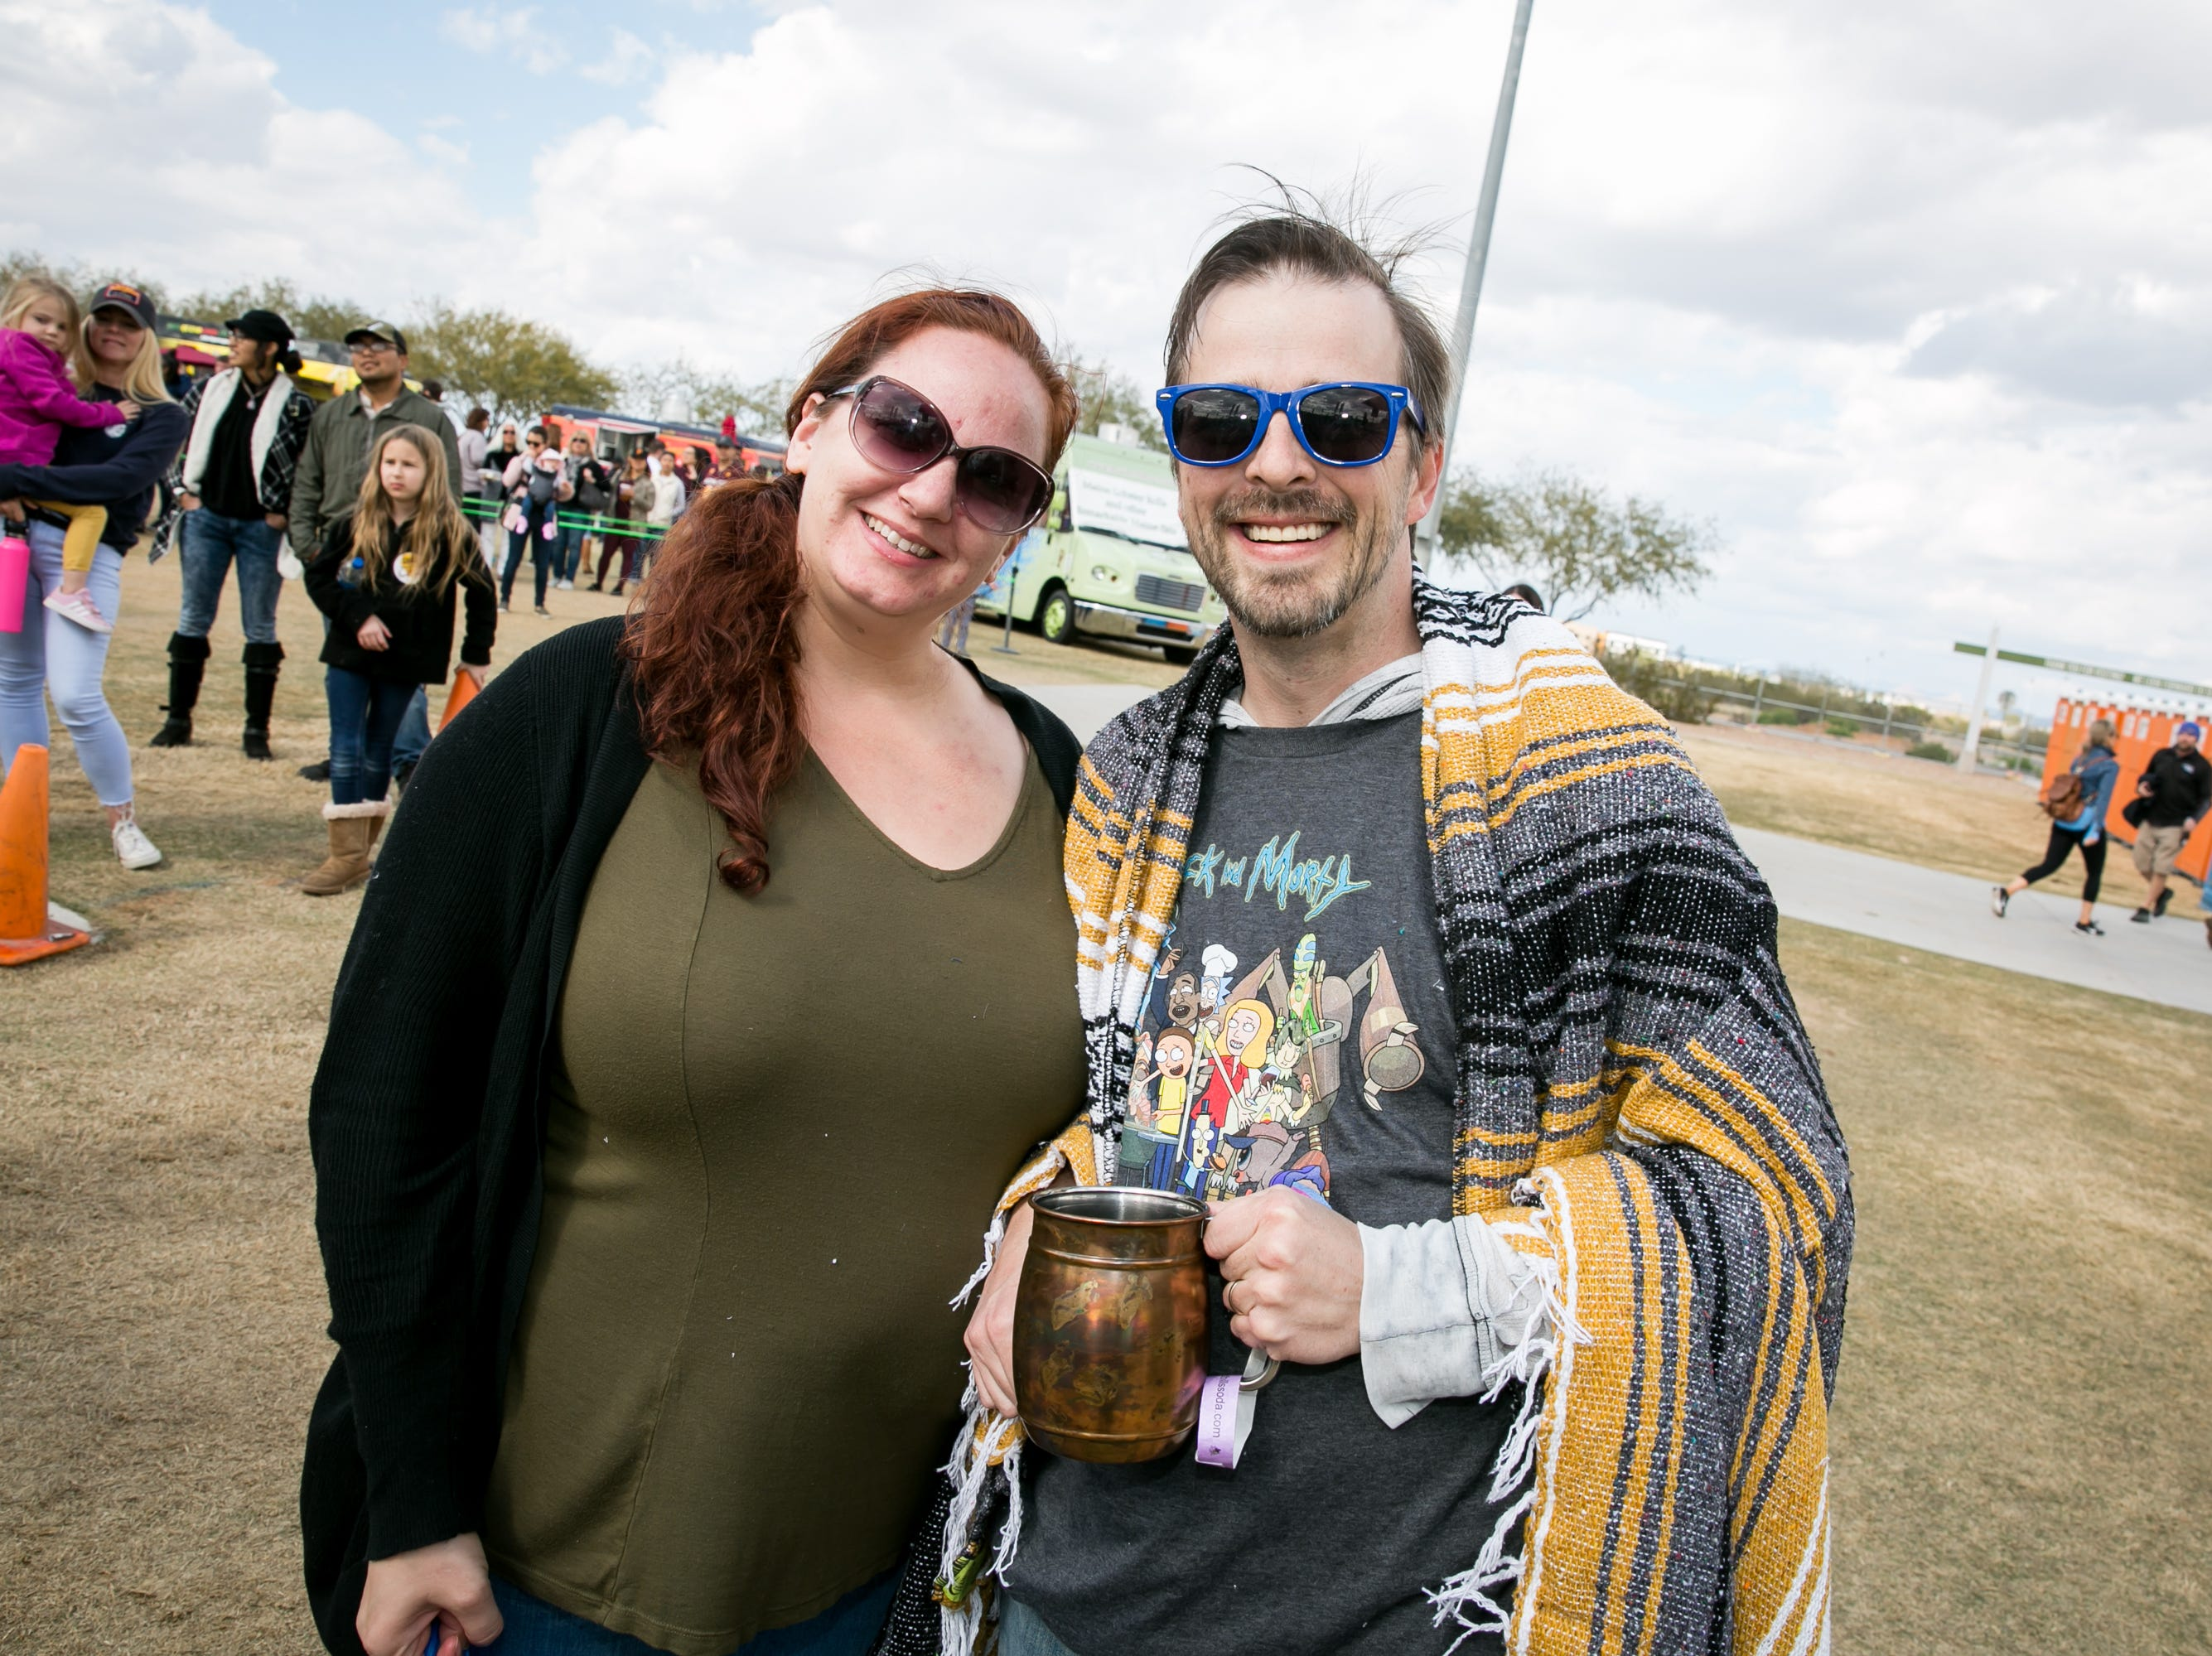 This couple stays warm during the Street Eats Food Truck Festival at Salt River Fields near Scottsdale on Feb. 17, 2019.